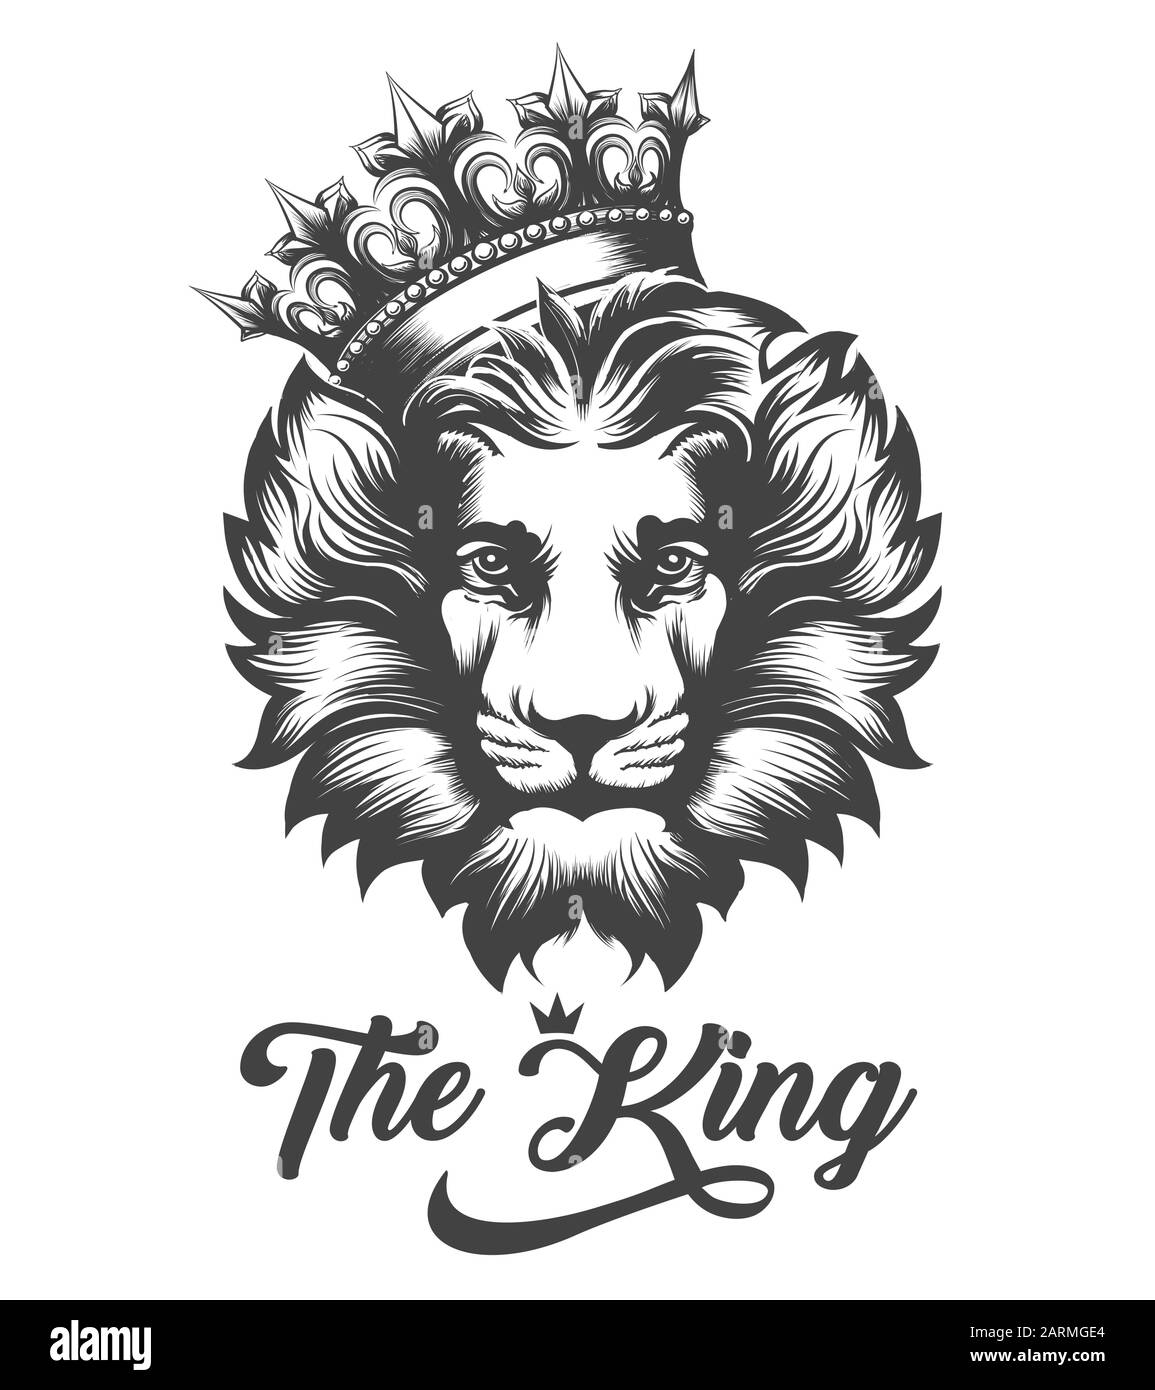 The Lion King Tattoo The Head Of A Lion In The Crown Isolated On A White Background Vector Illustration Stock Vector Image Art Alamy Outline king lion tattoo » tattoo ideas. https www alamy com the lion king tattoothe head of a lion in the crown isolated on a white background vector illustration image341586060 html